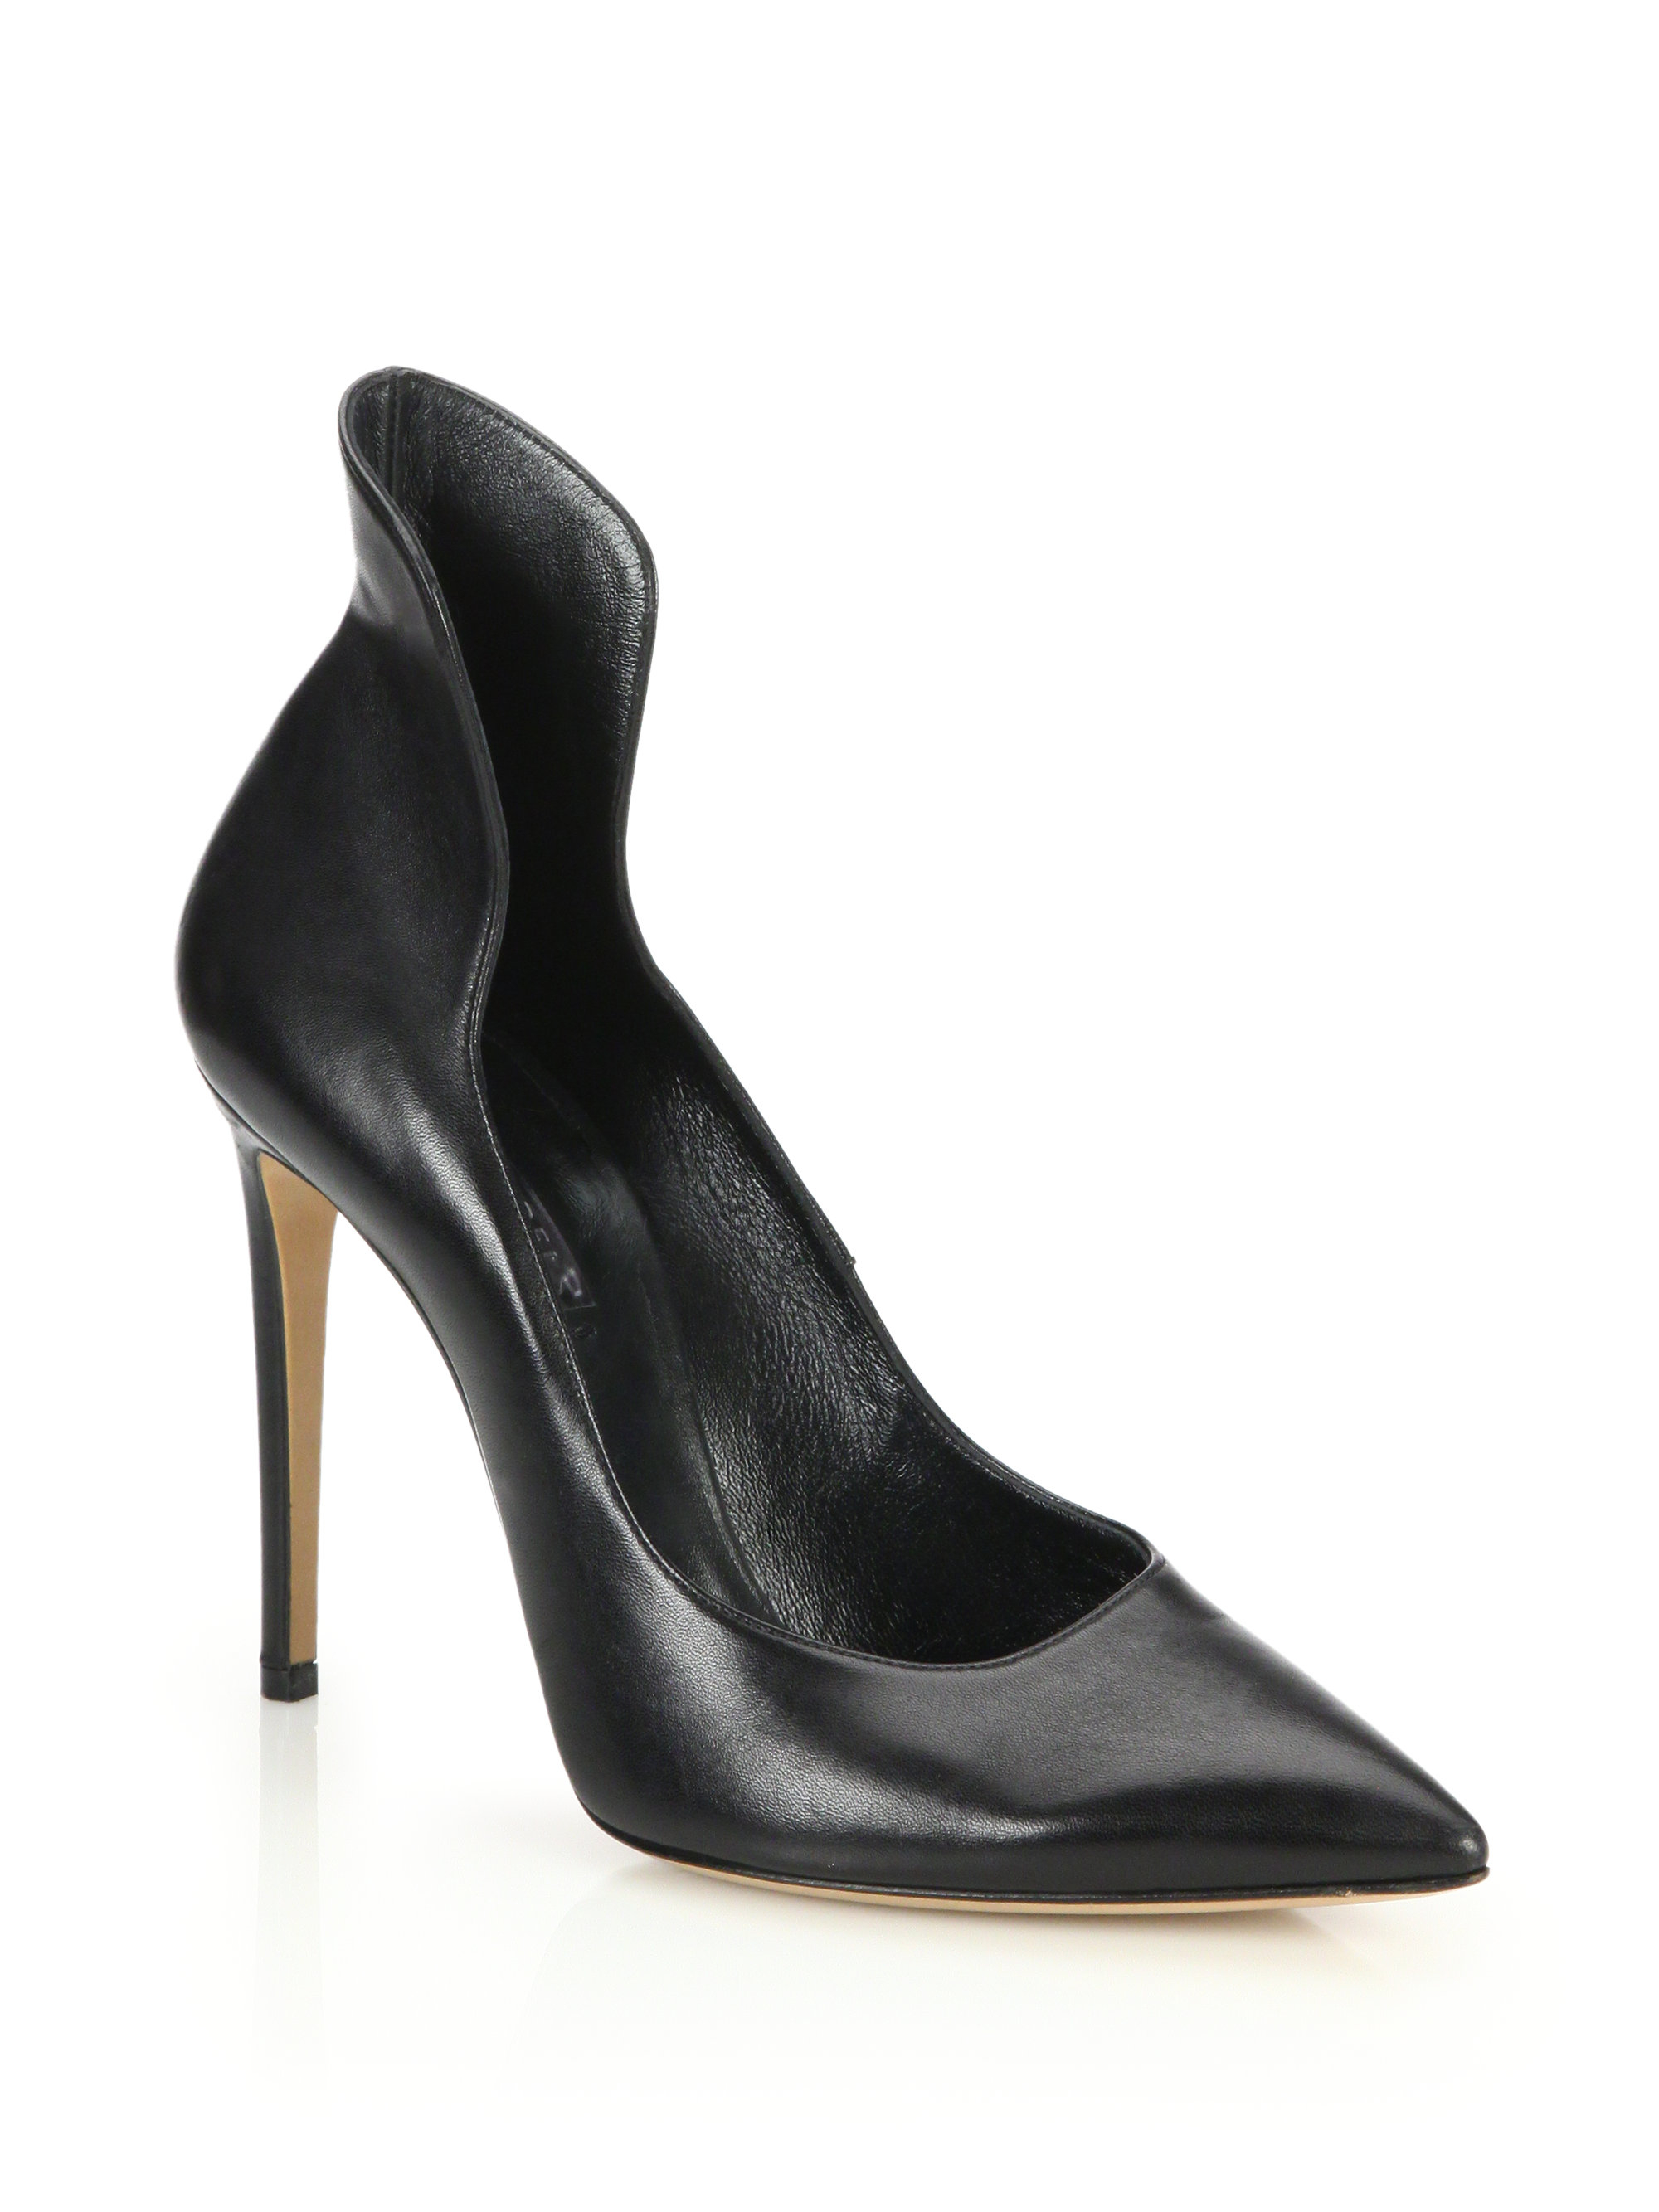 Lyst Casadei Peplum Back Leather Pumps In Black